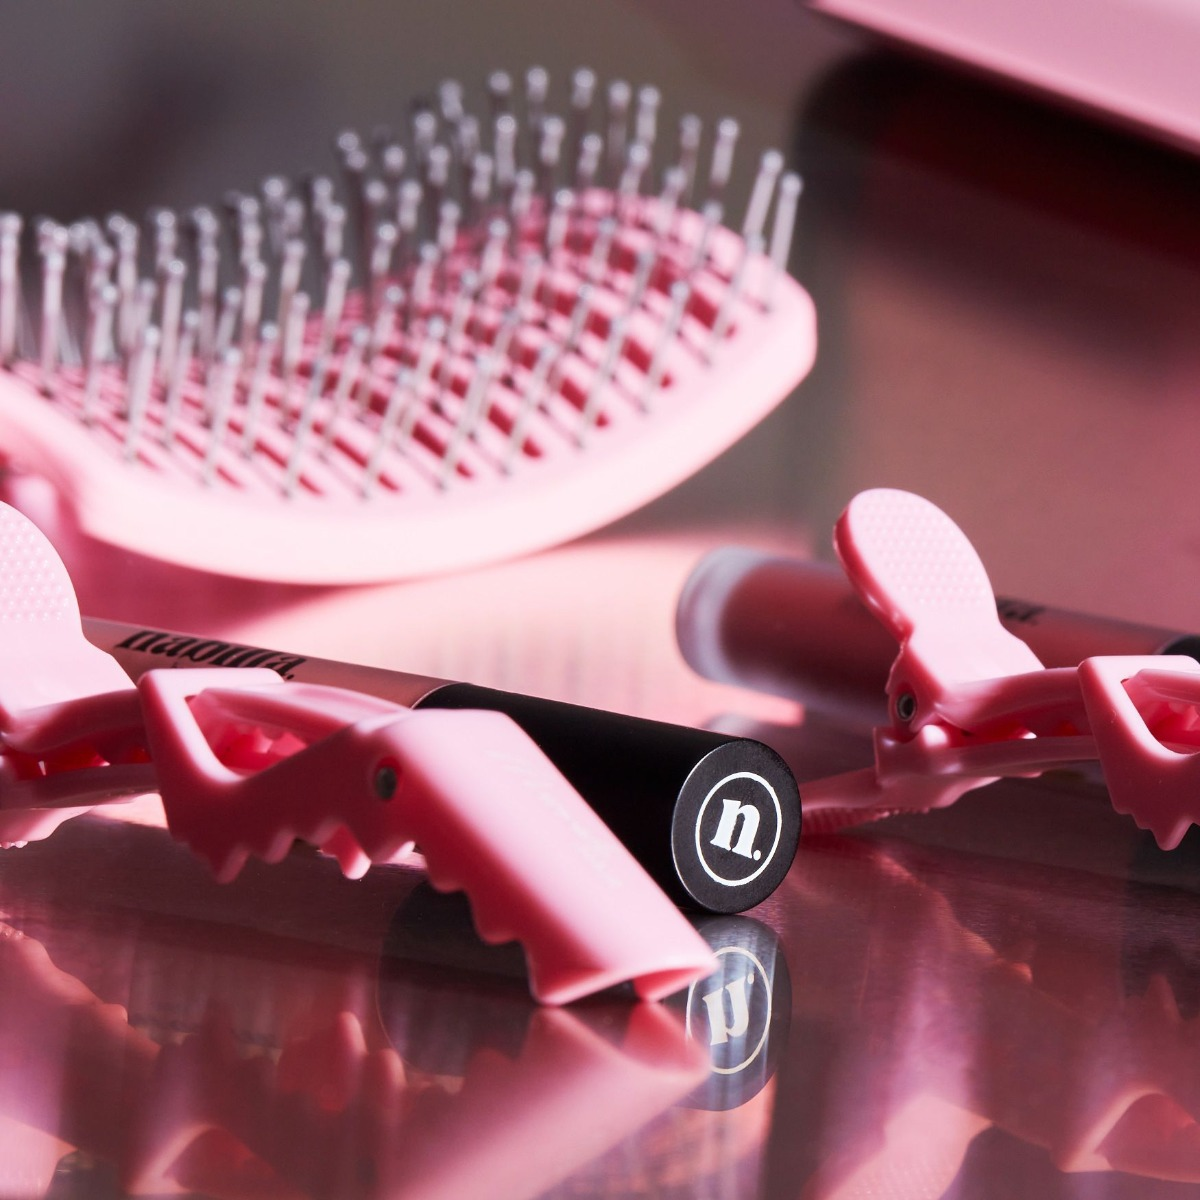 2 lipsticks of your choice + 1 brush + clips